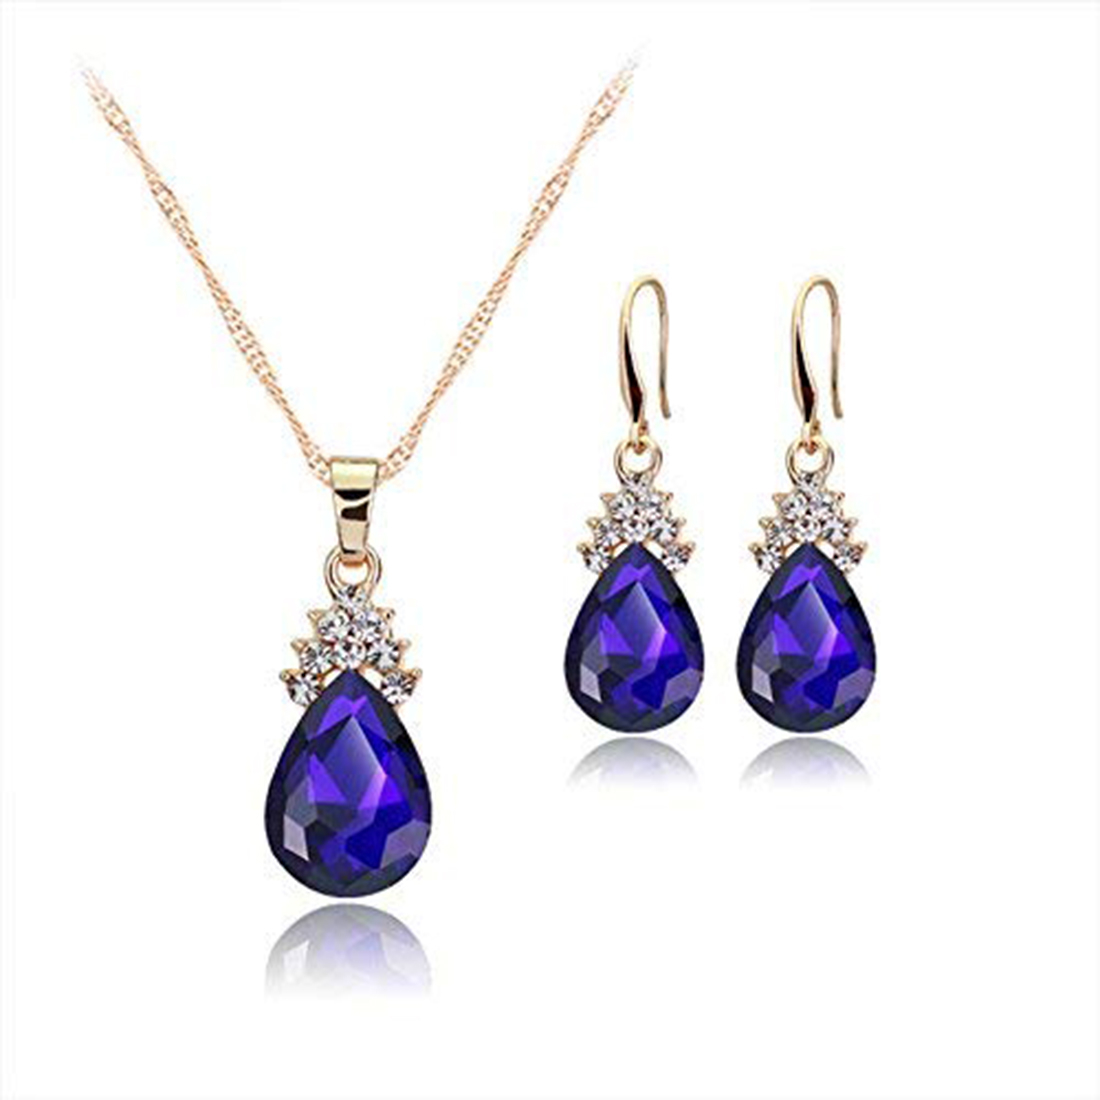 Fashion jewelry set female crystal zircon drop necklace earrings set combination